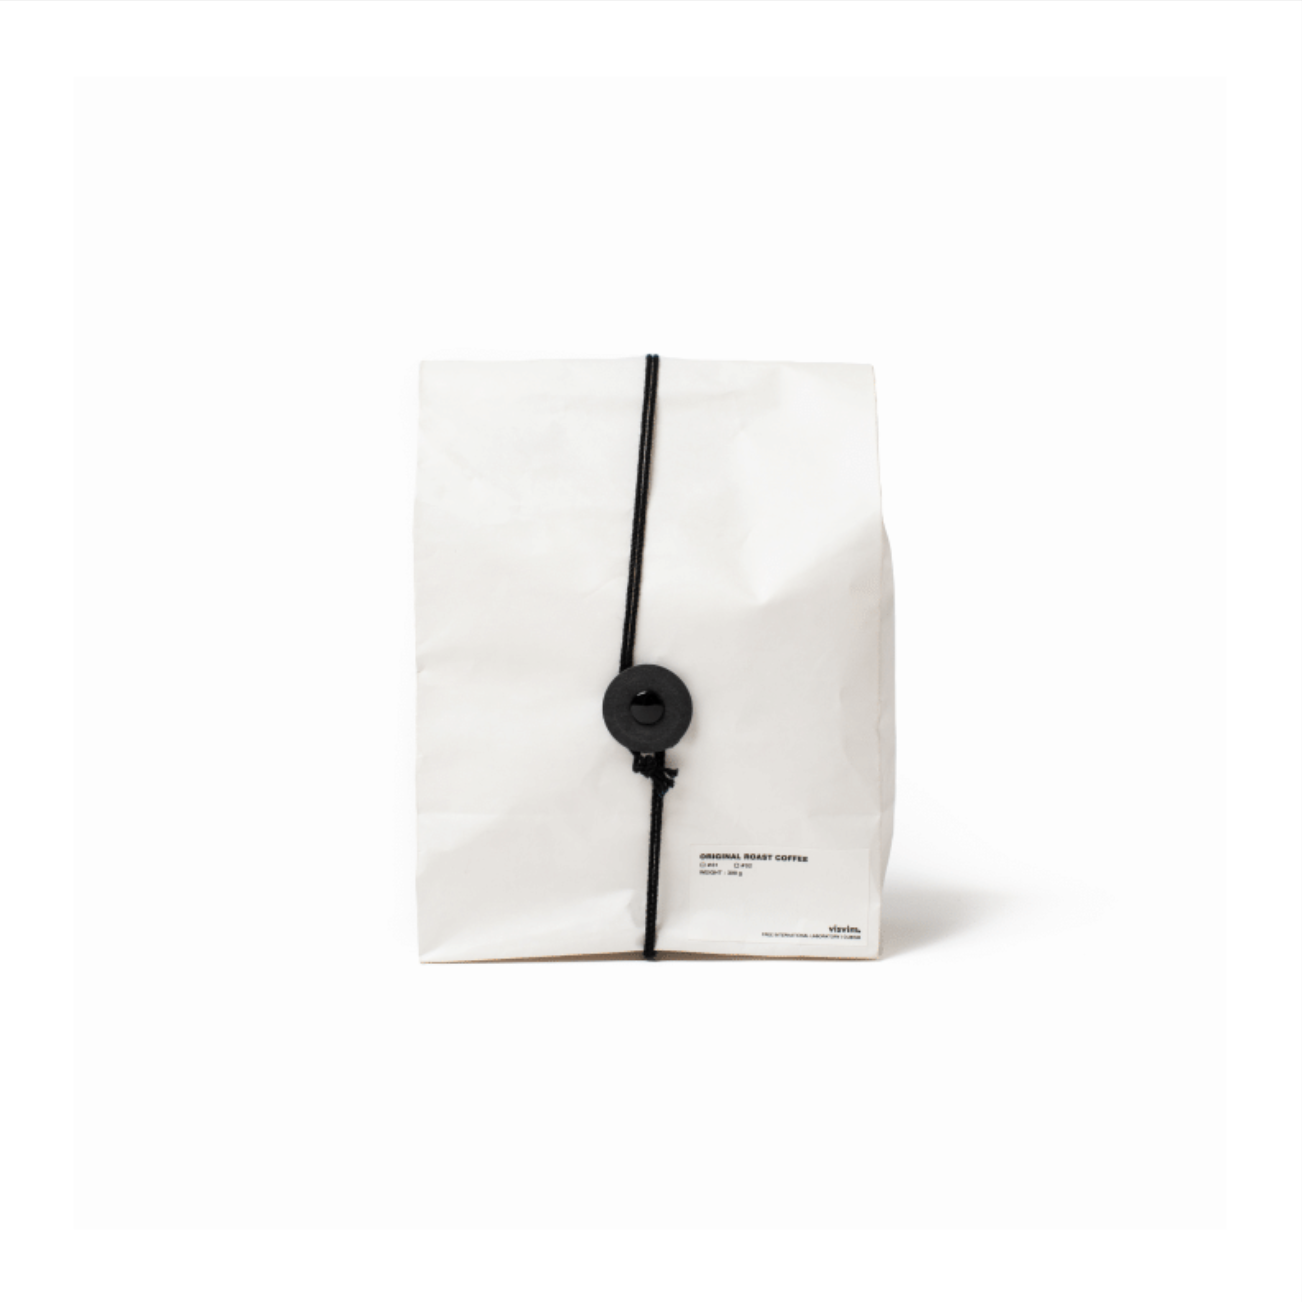 visvim / Little Cloud Coffee ORIGINAL ROAST COFFEE 200g